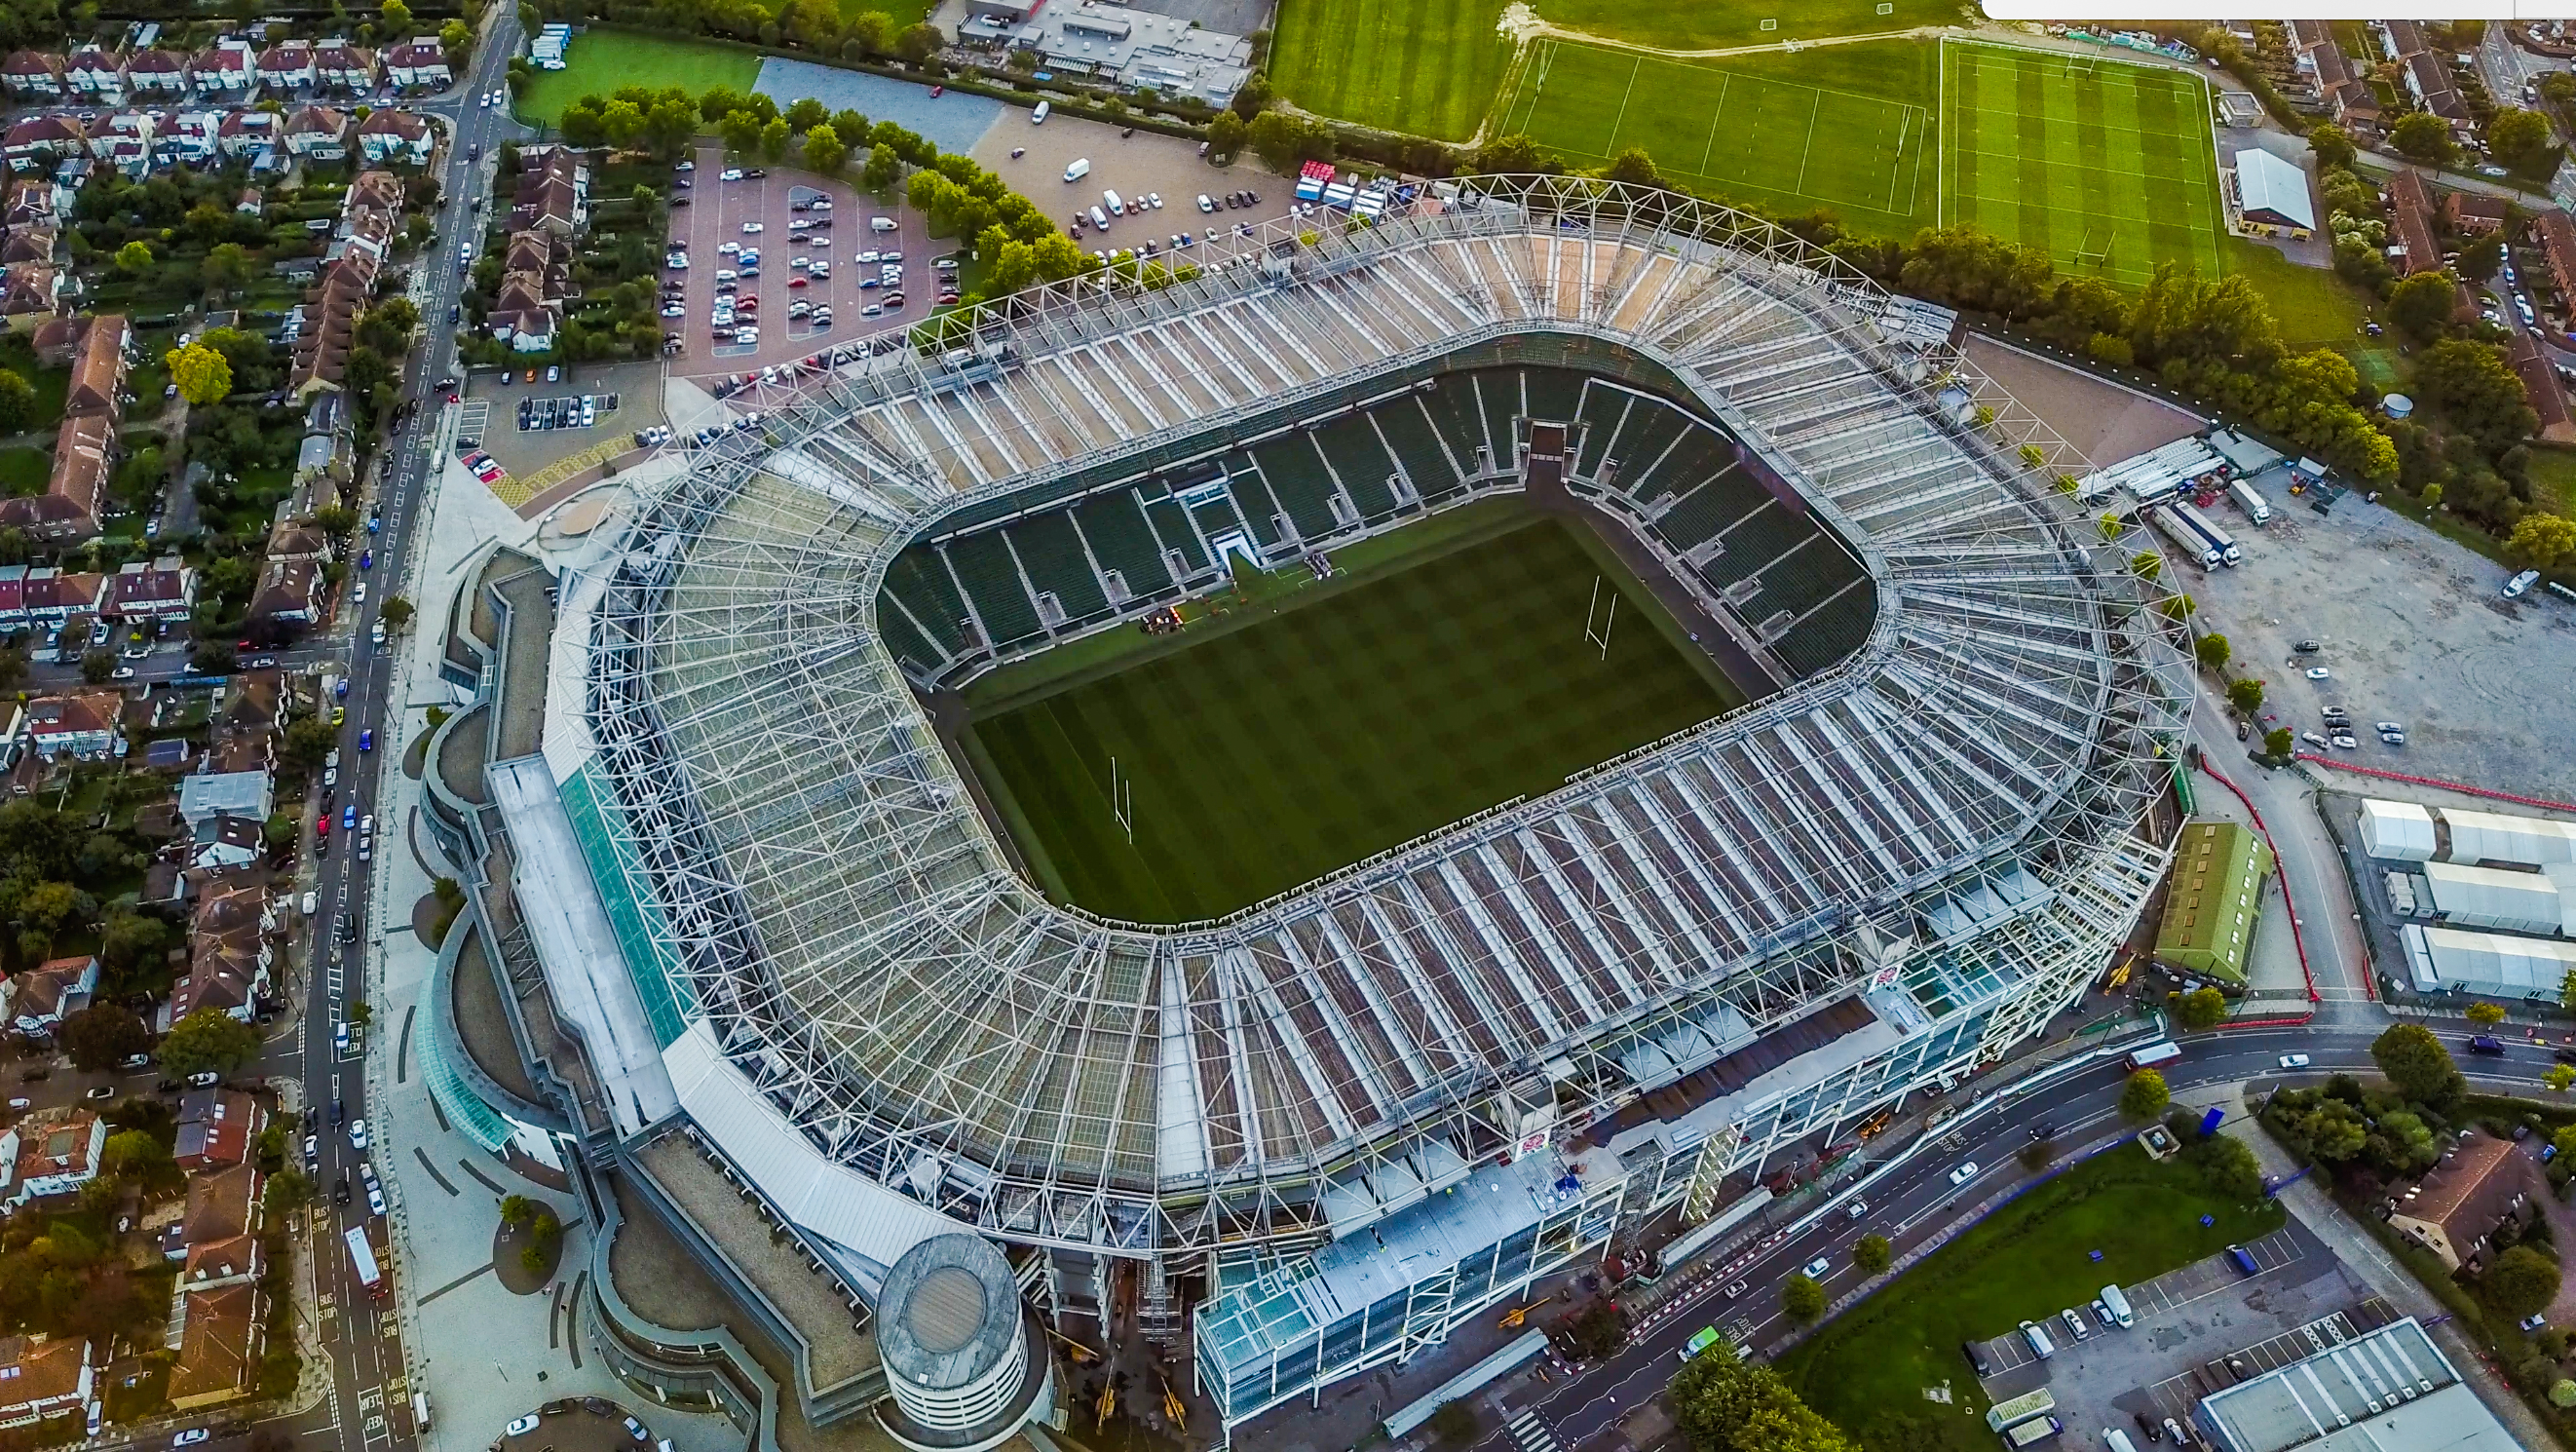 Twickenham Stadium To Move Event Bookings Online In Response